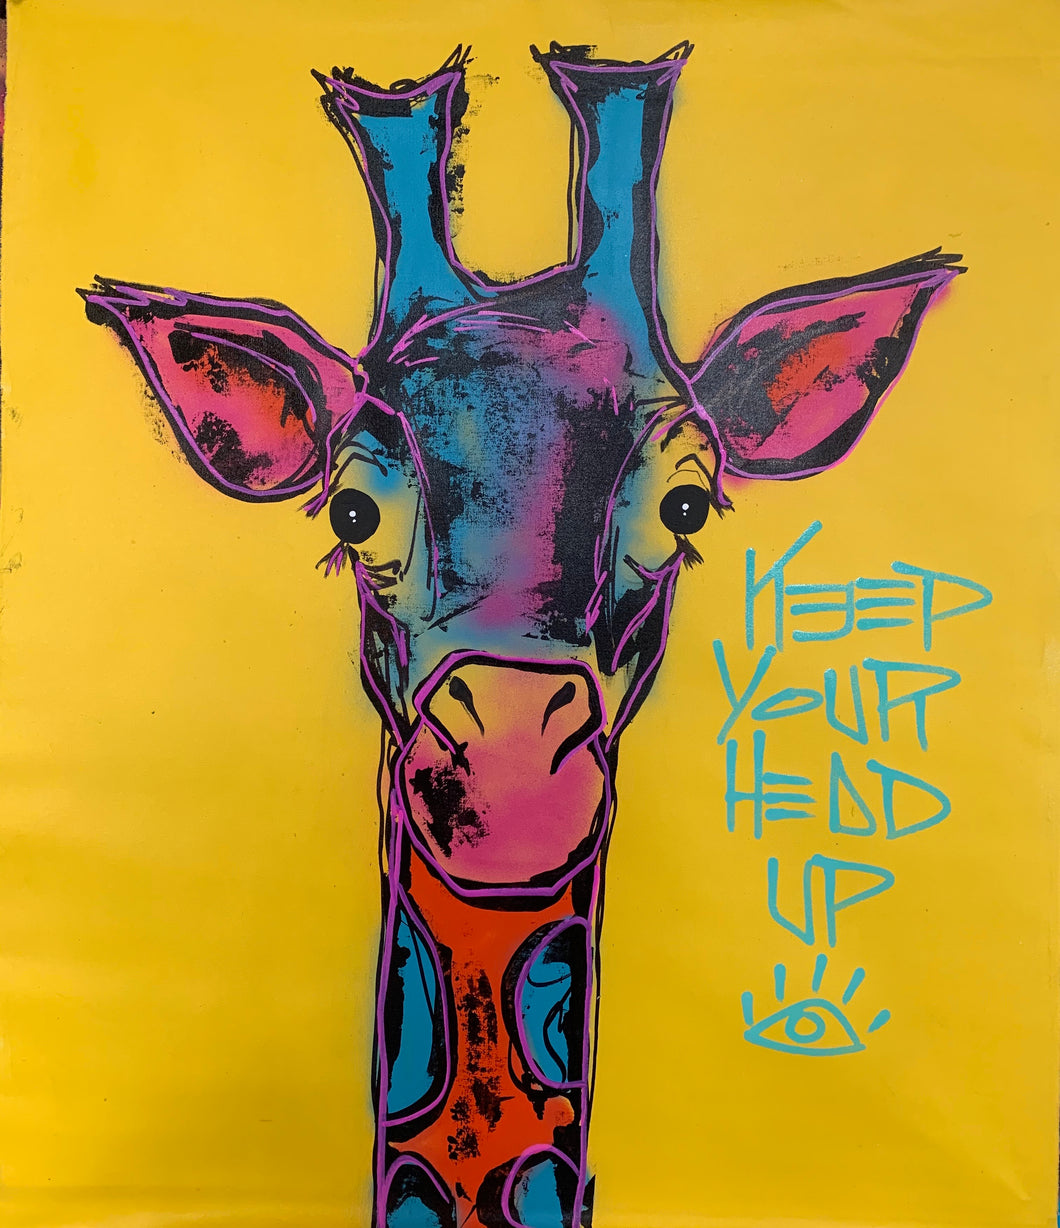 Keep your head up / yellow